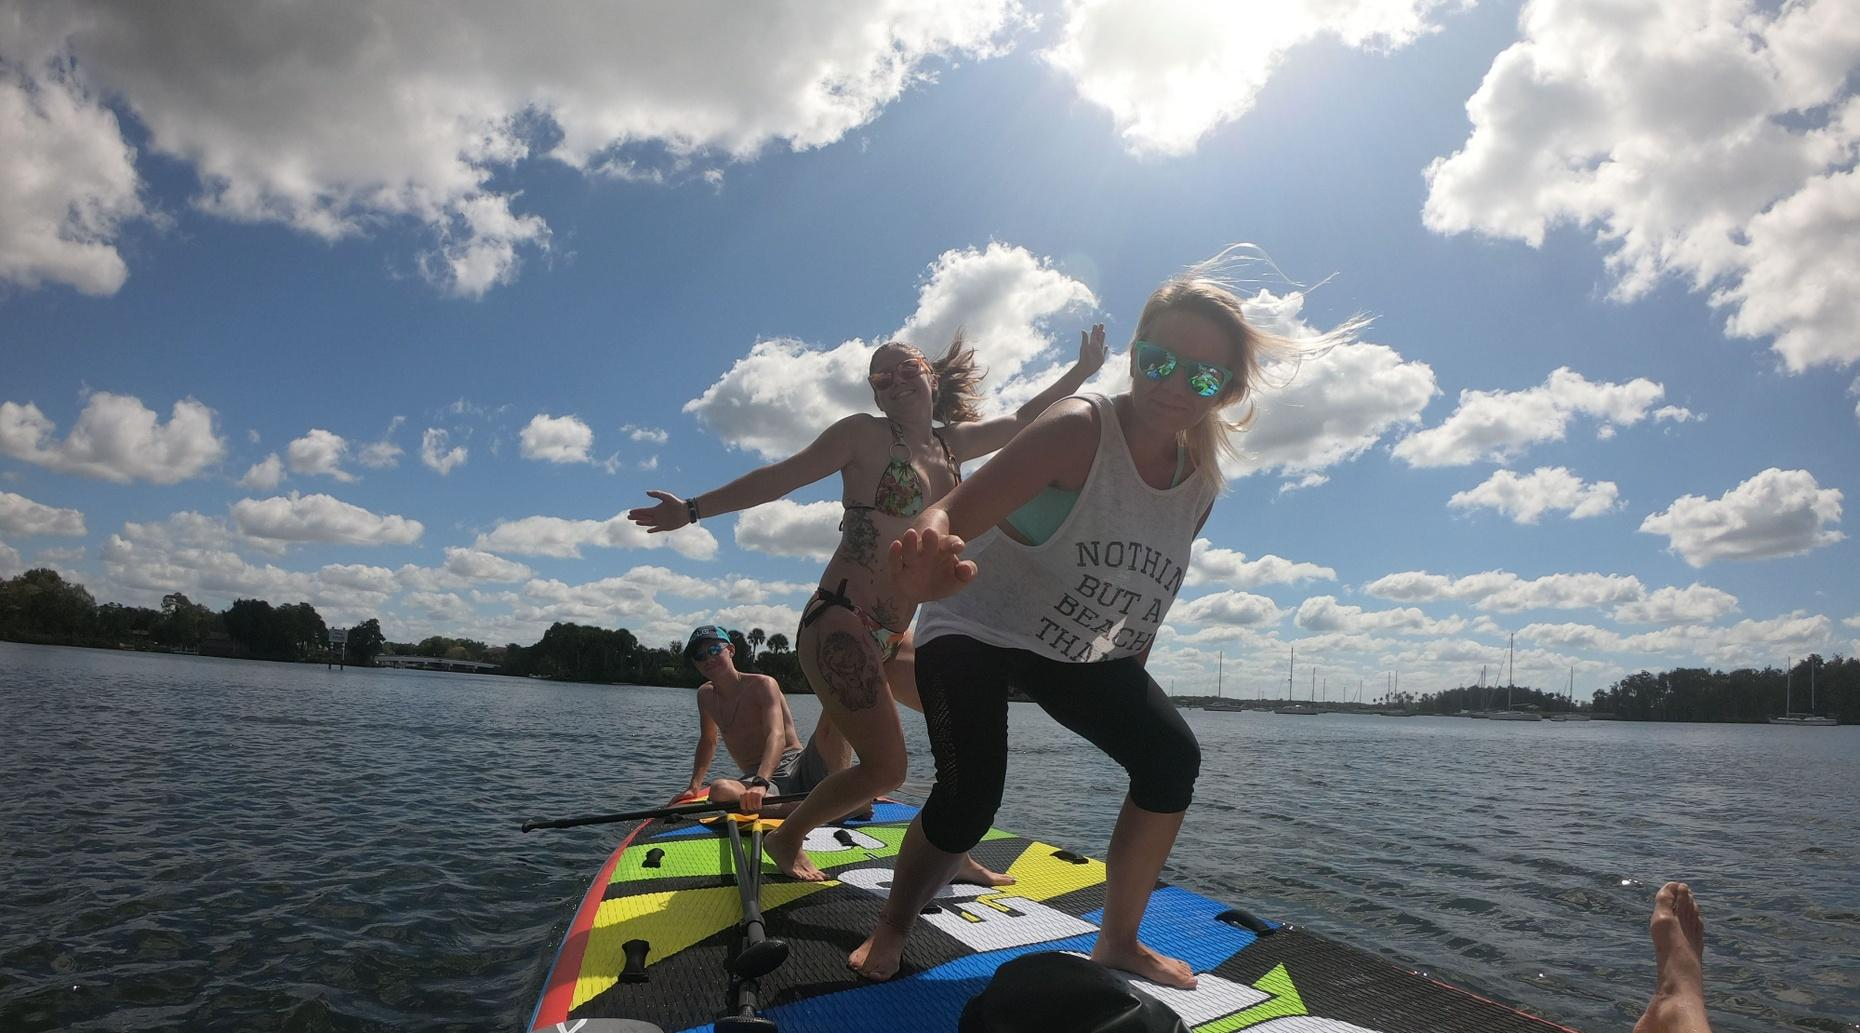 2-Hour Party Board Rental and Manatee Viewing at Crystal River